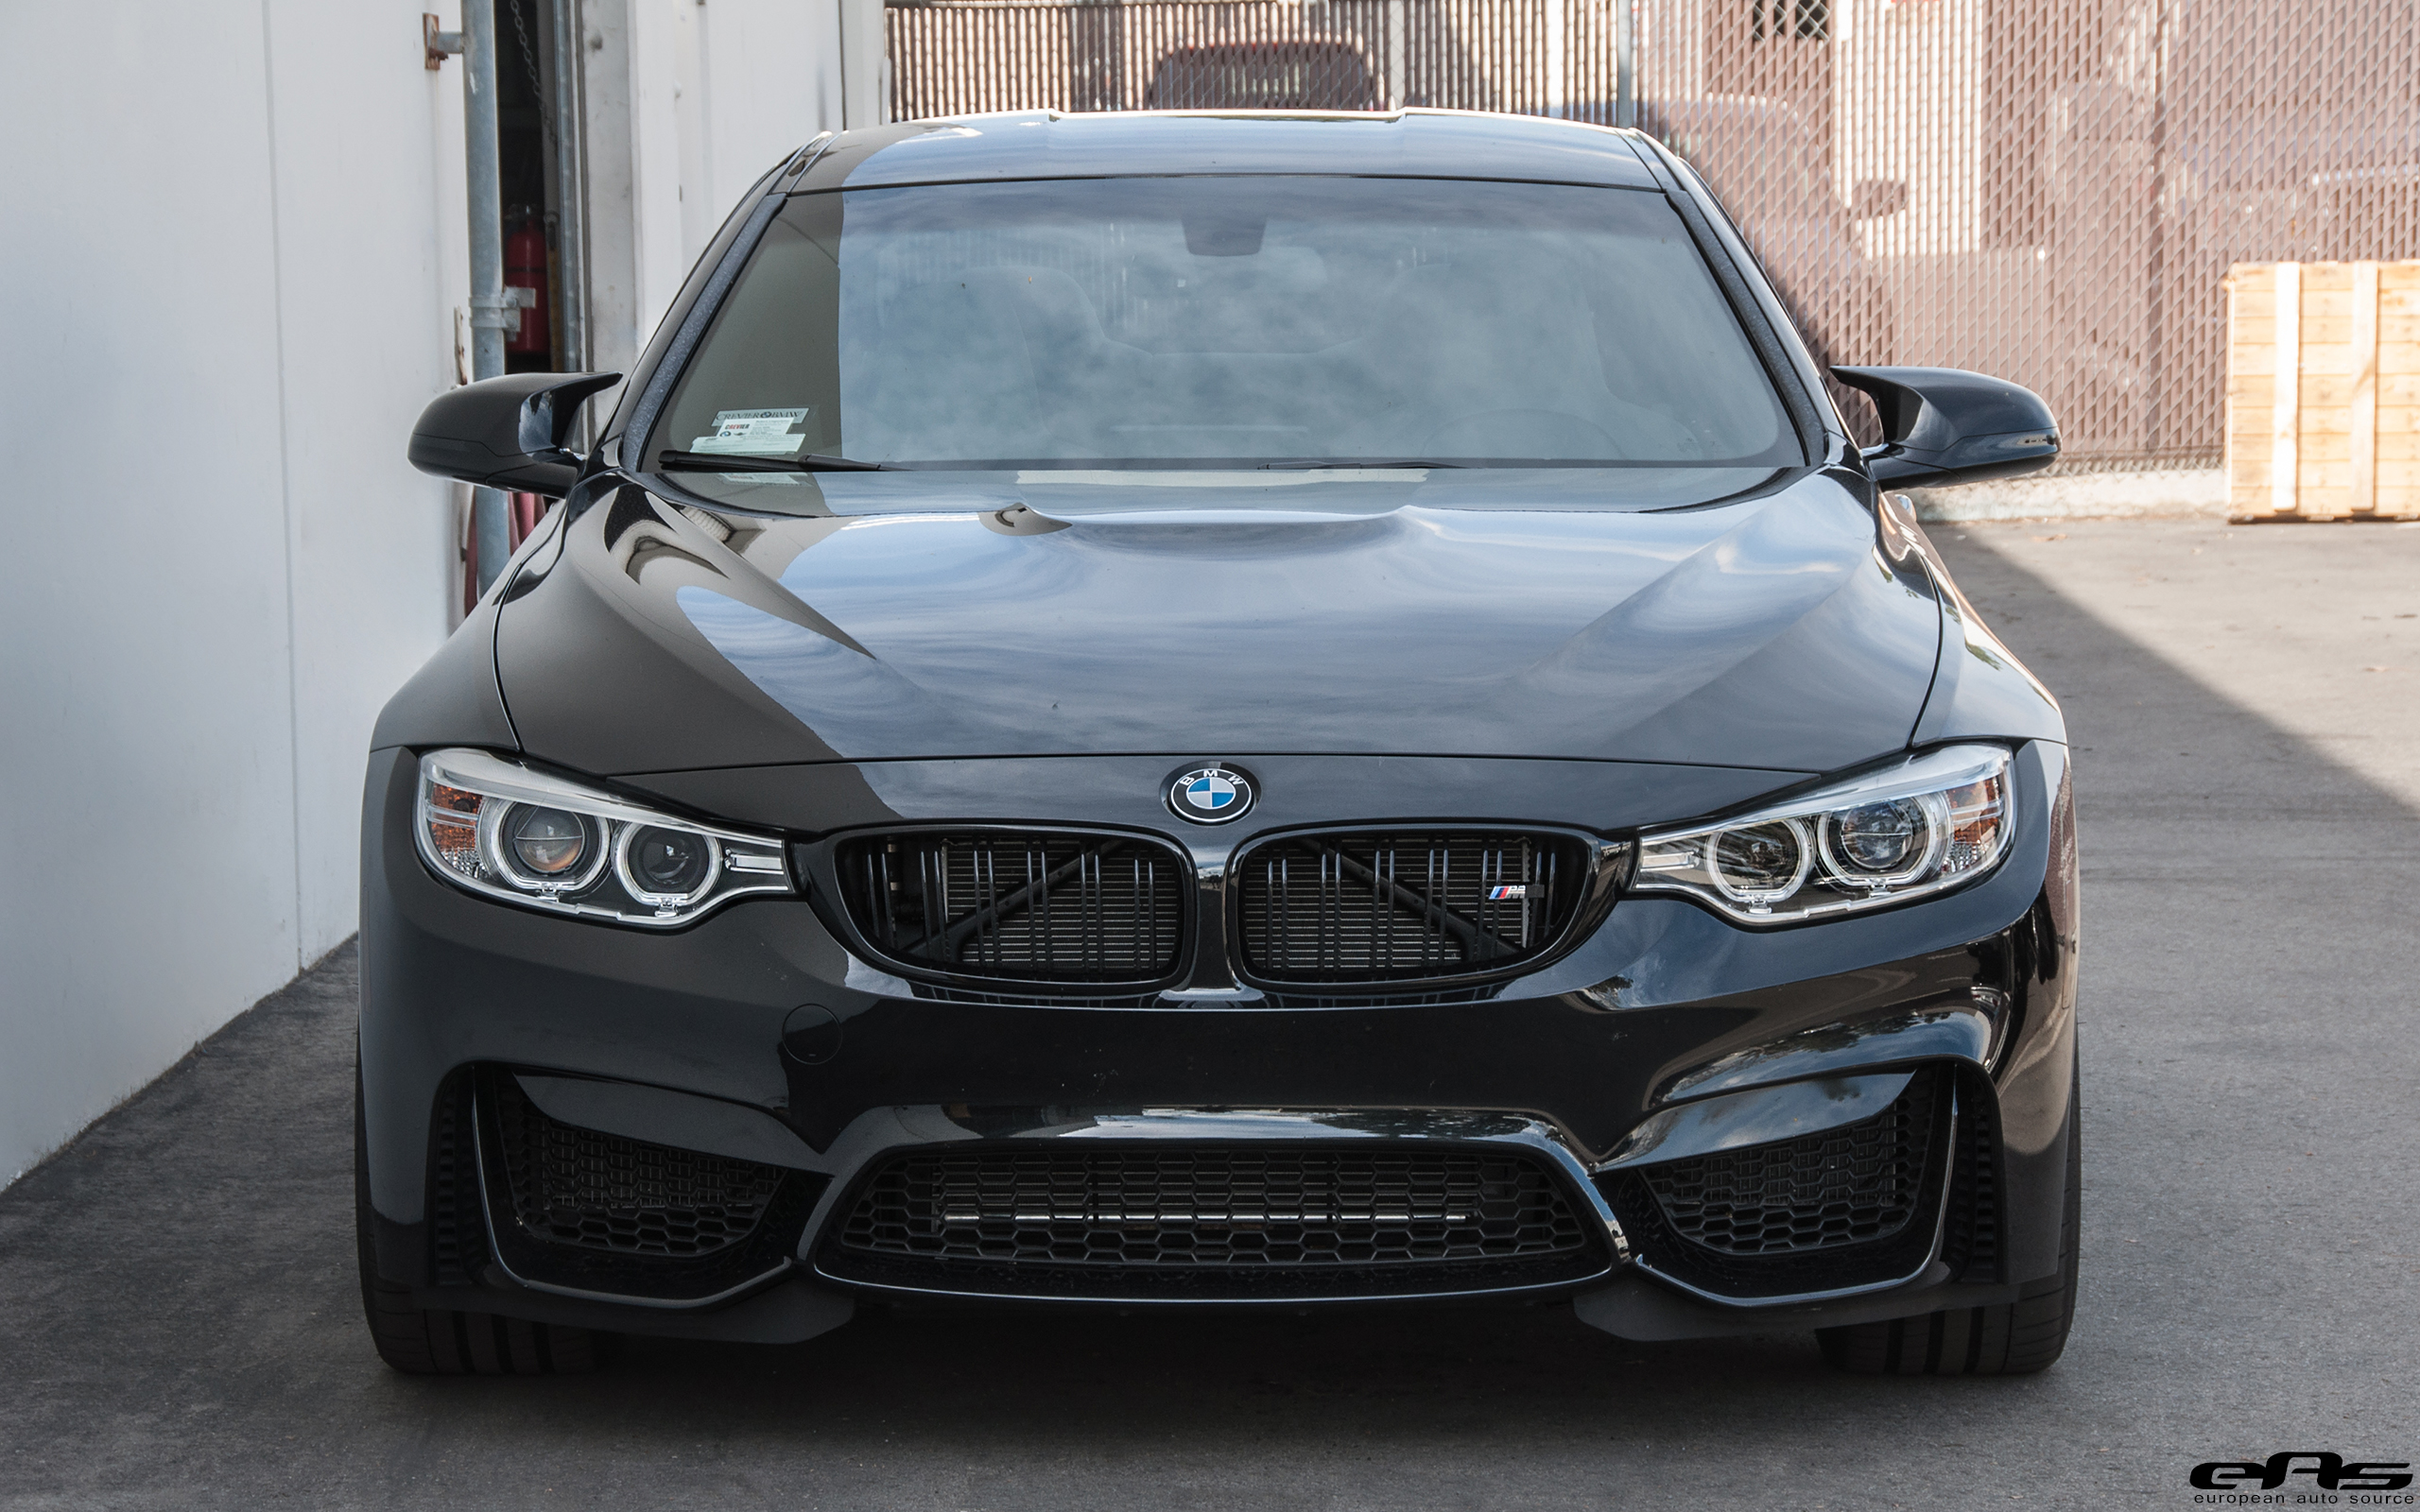 Black Sapphire Metallic Competition BMW M4 Image 7